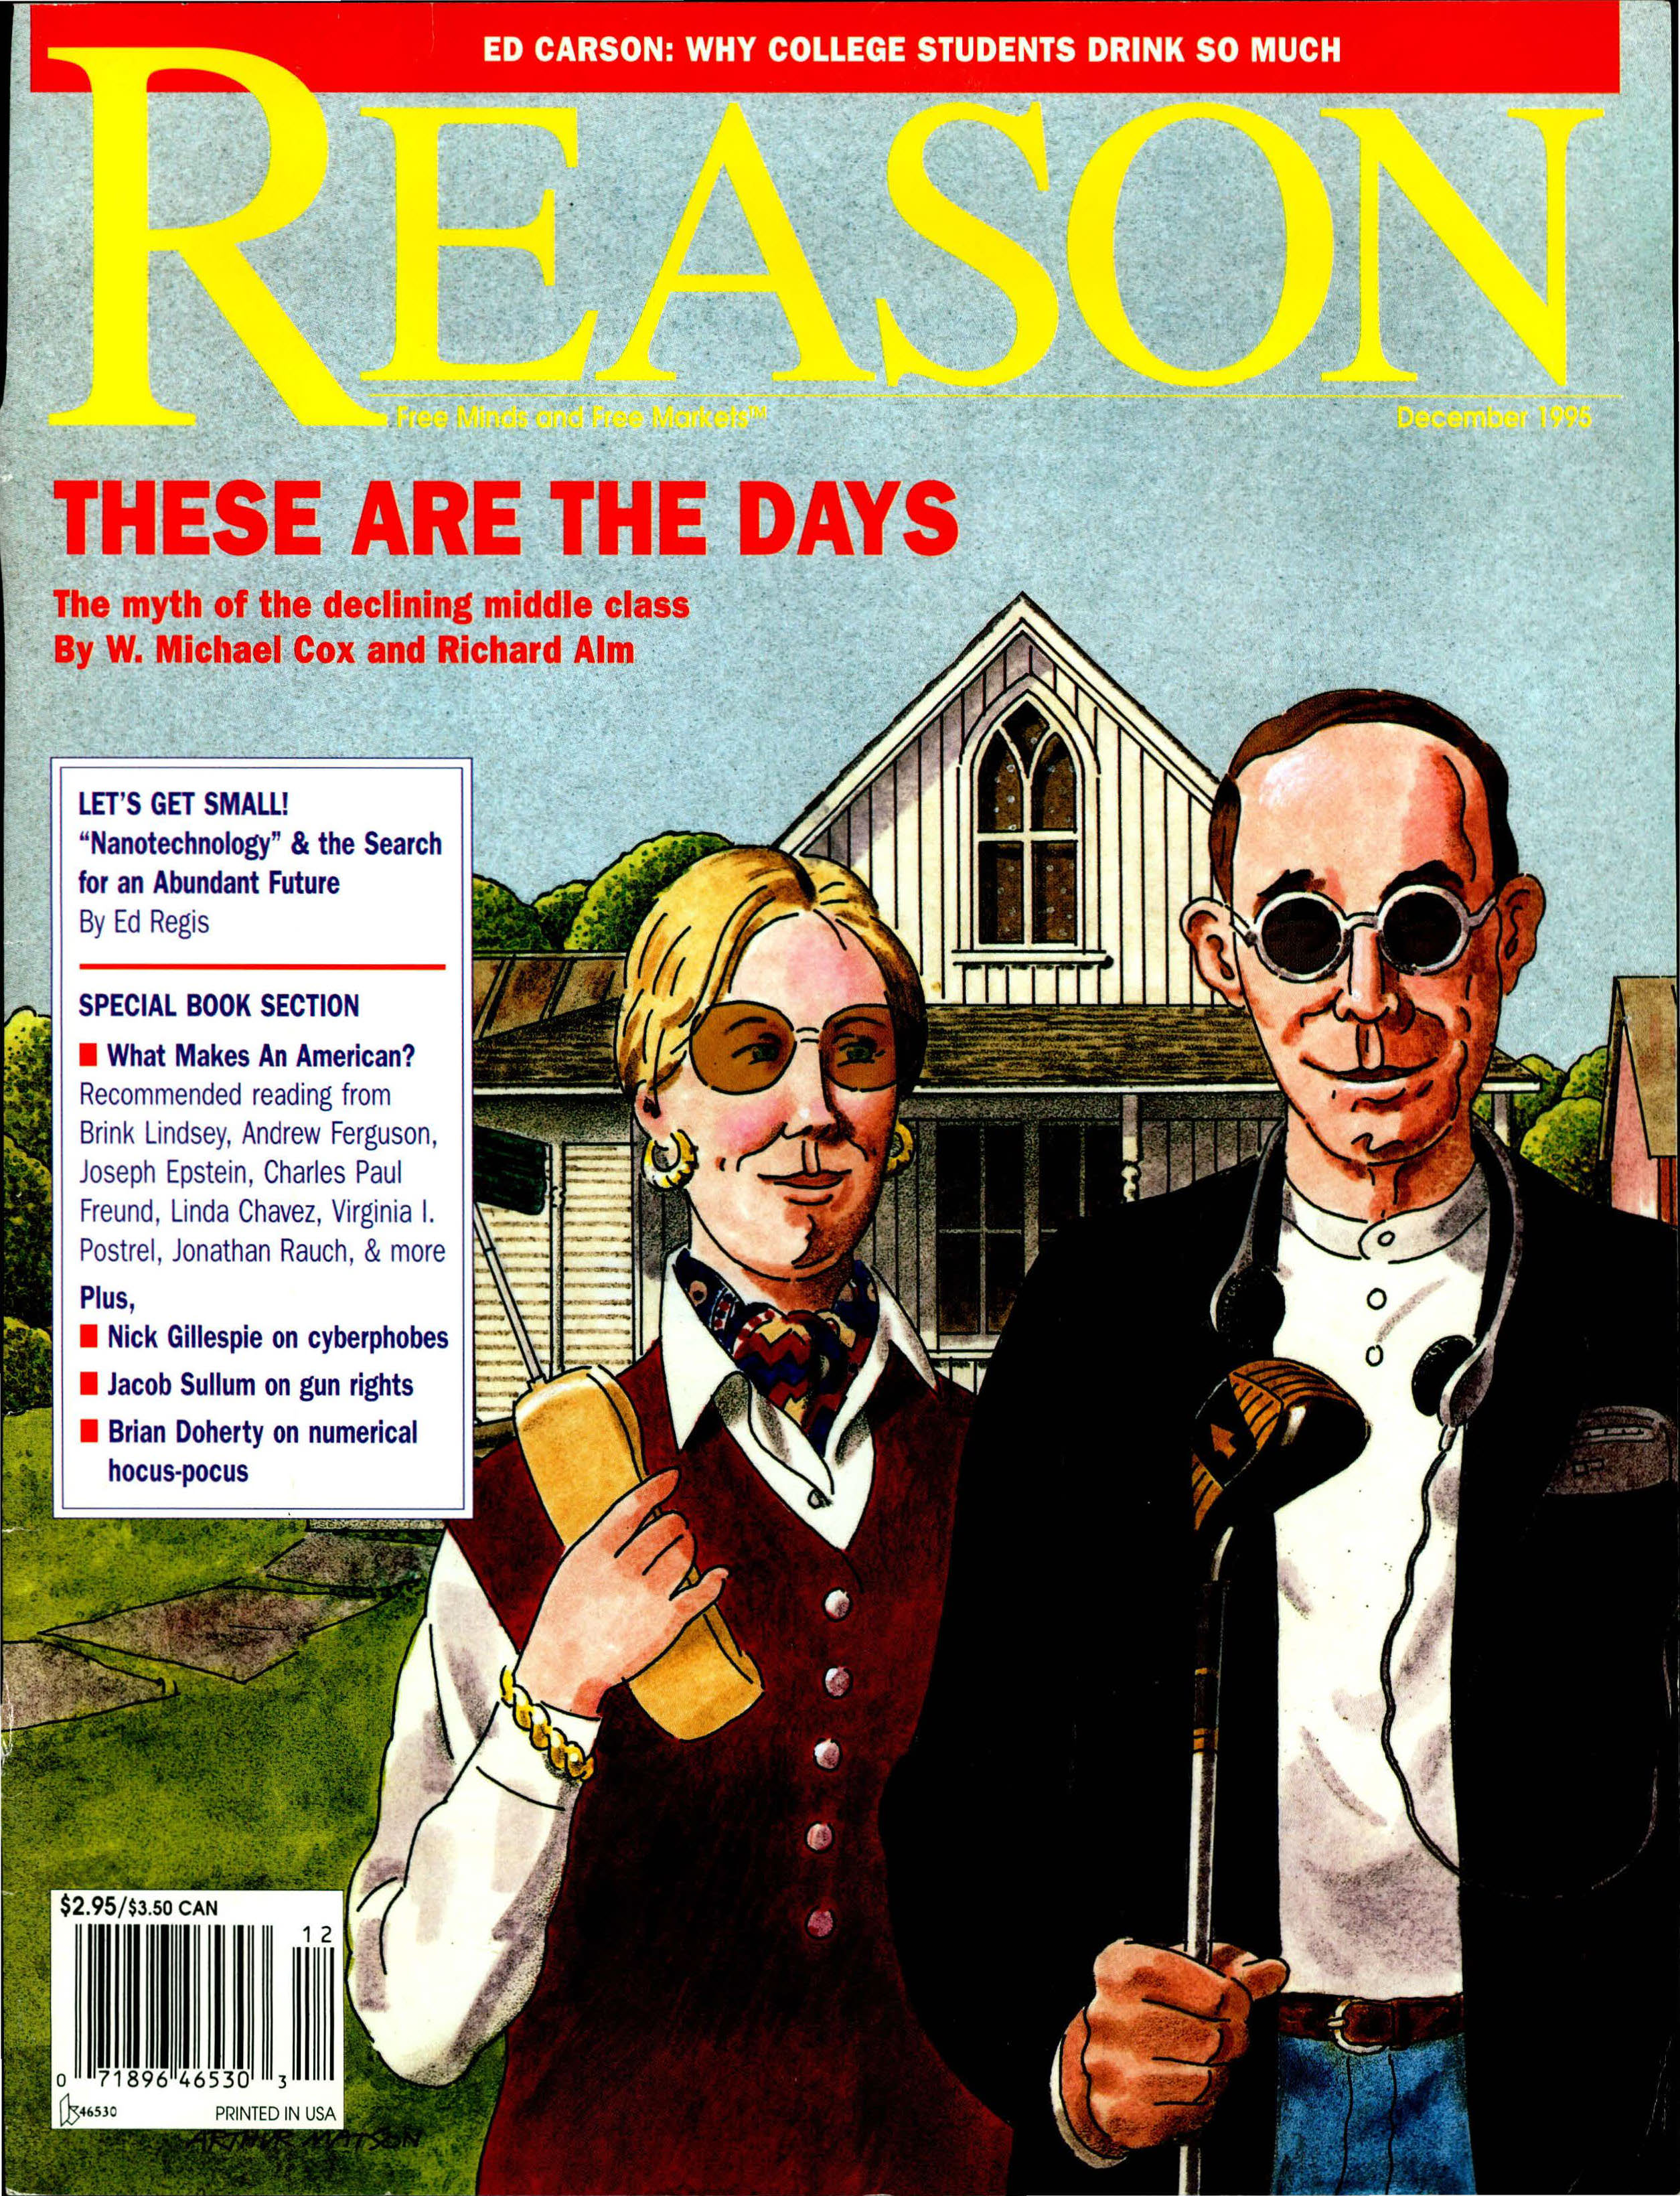 Reason Magazine, December 1995 cover image